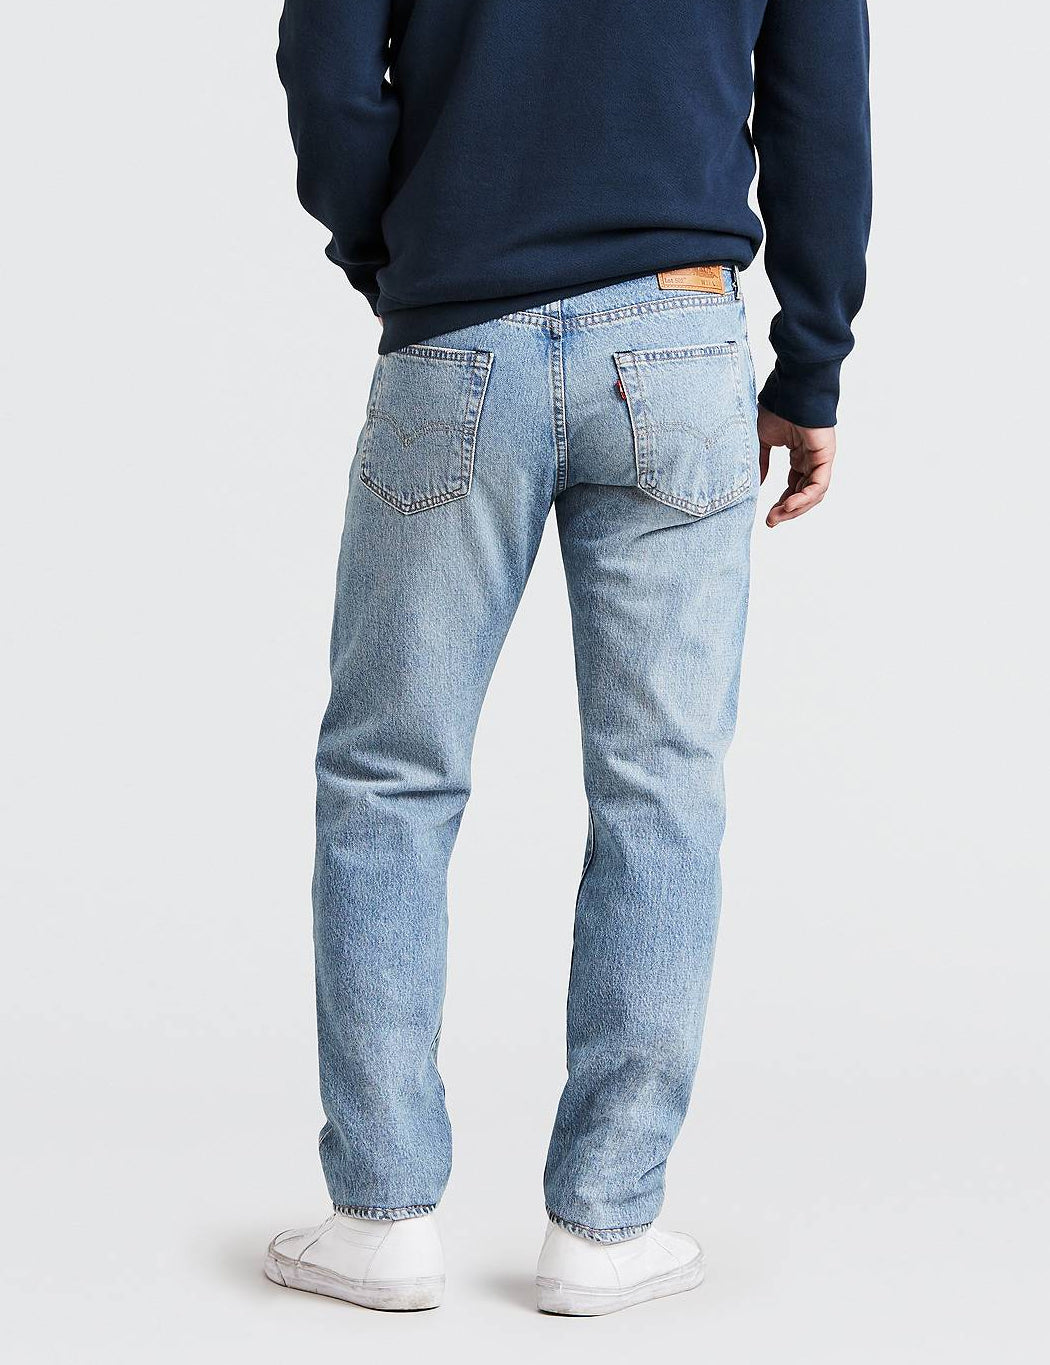 Levis 502 Jeans (Regular Tapered) - Powder Puff Warp Blue